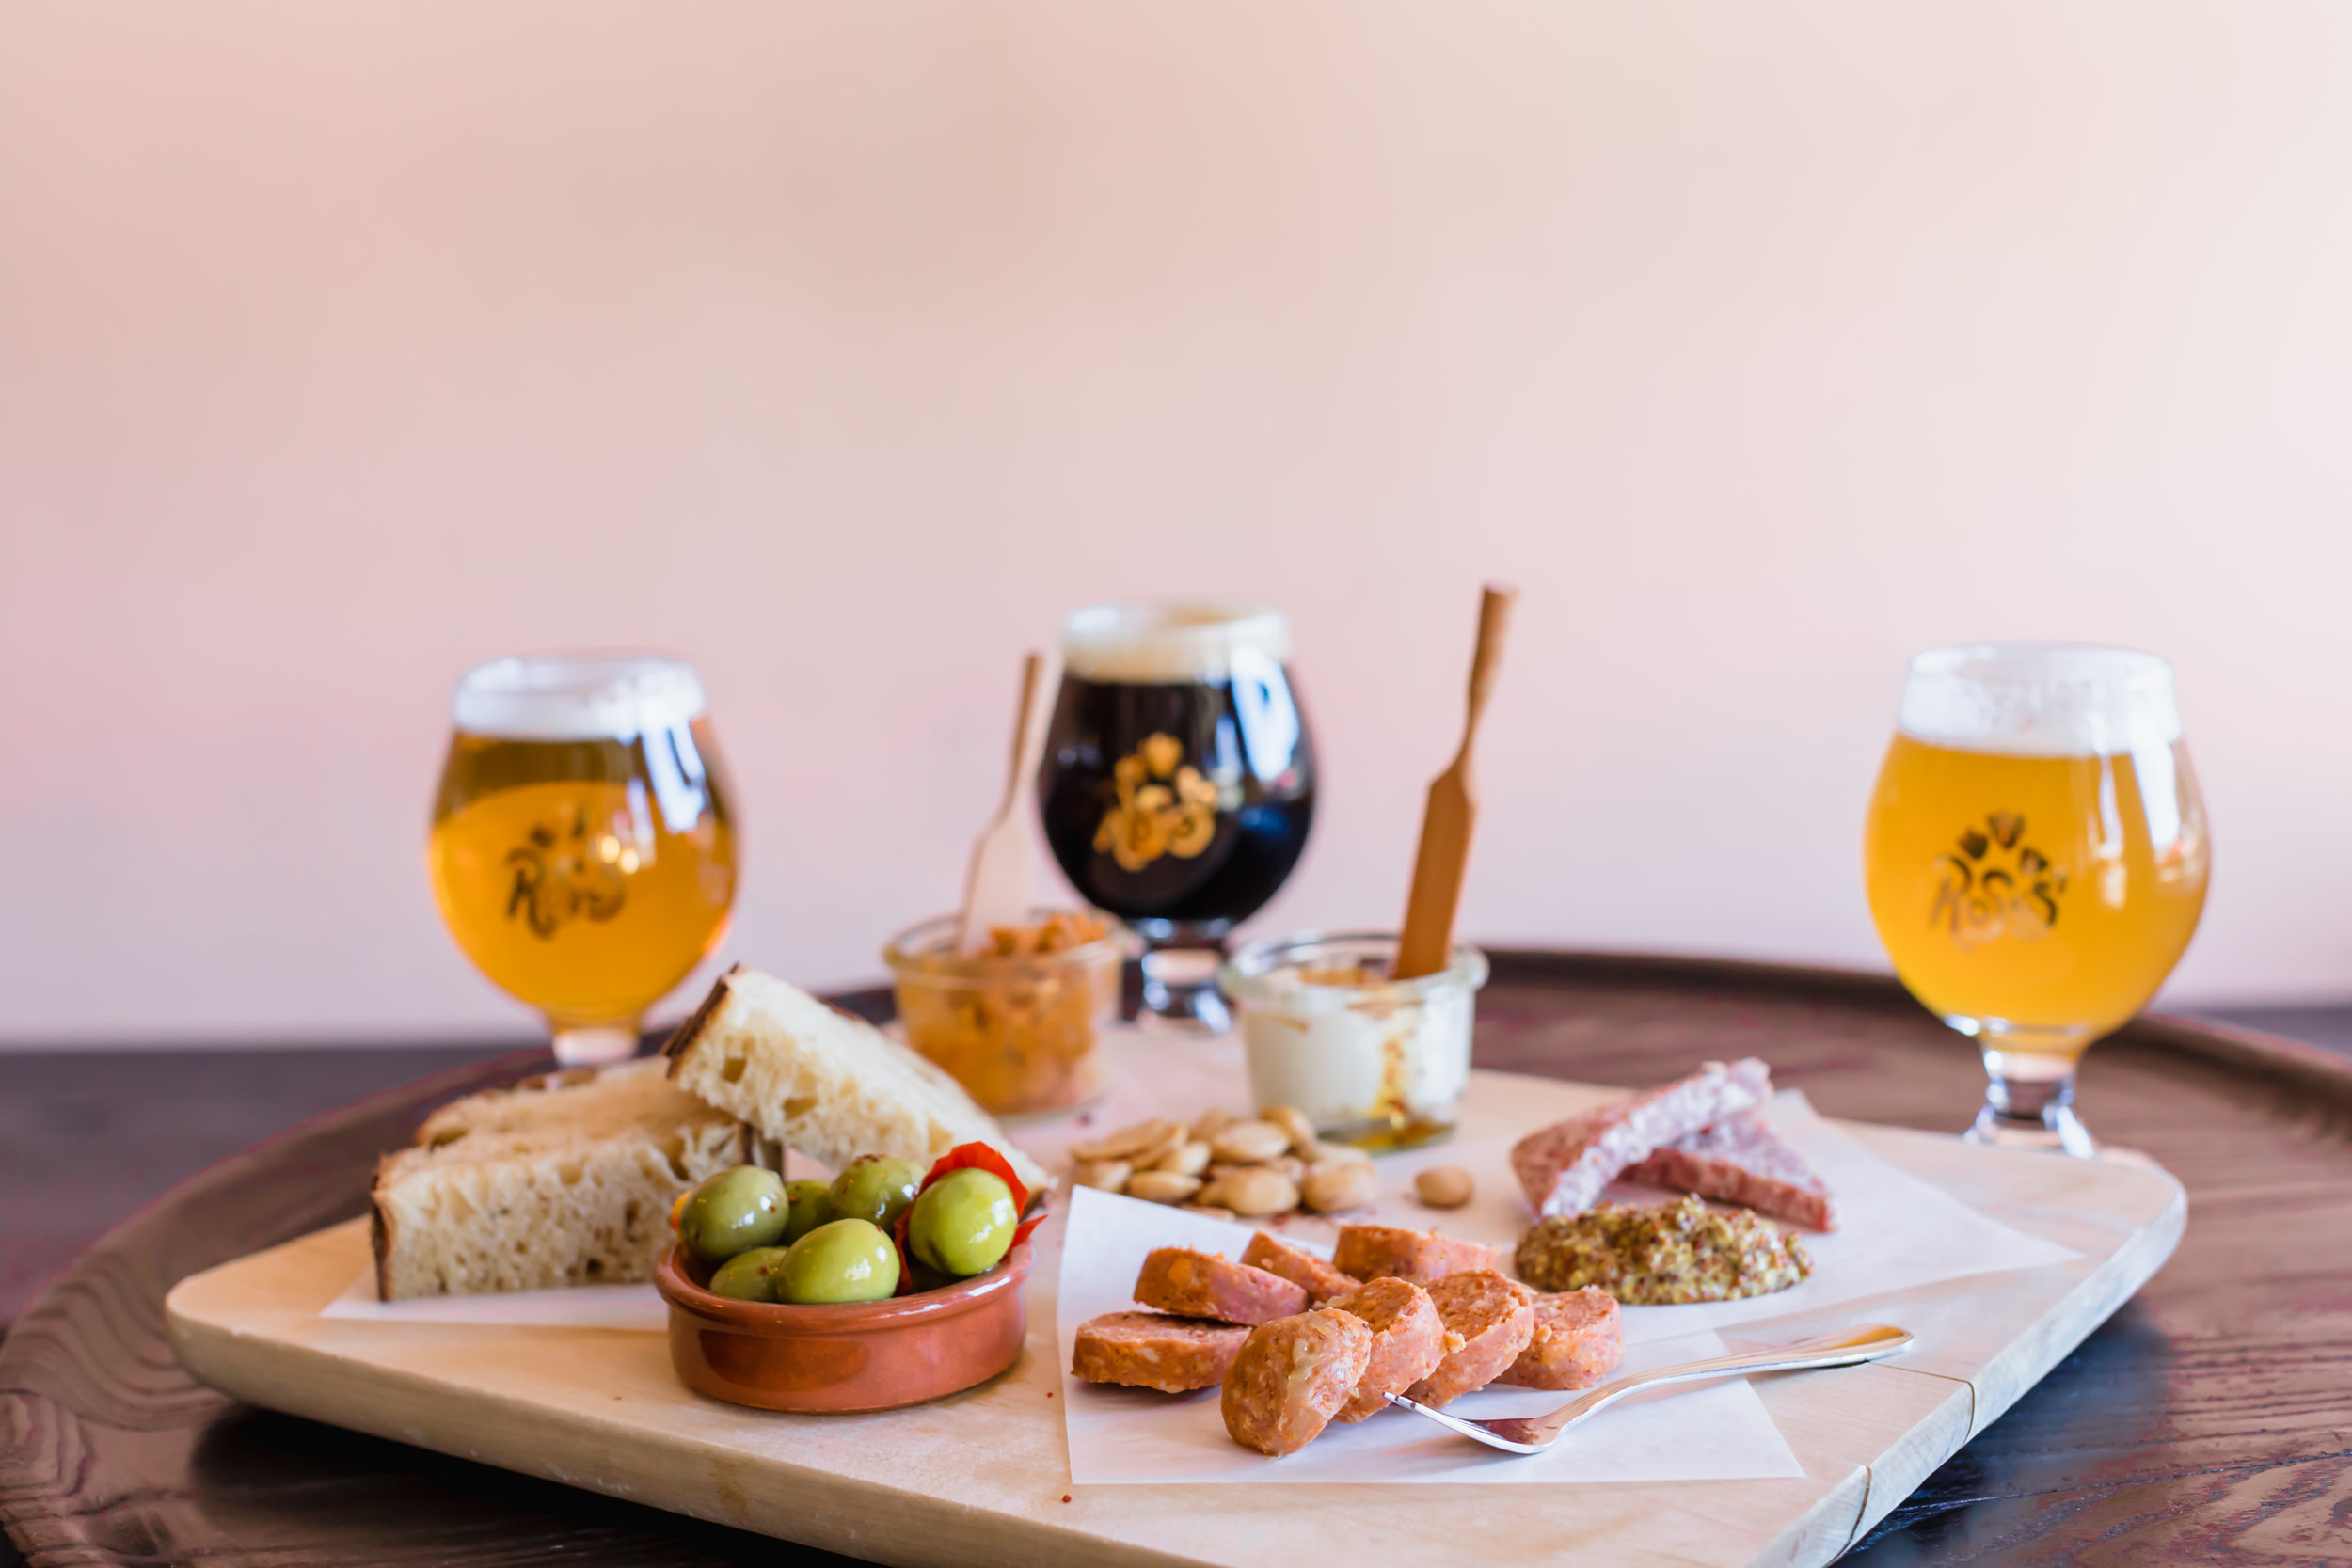 Foodie Snitch Feature: Rose's Taproom in Oakland CA (Emily Joan Greene)